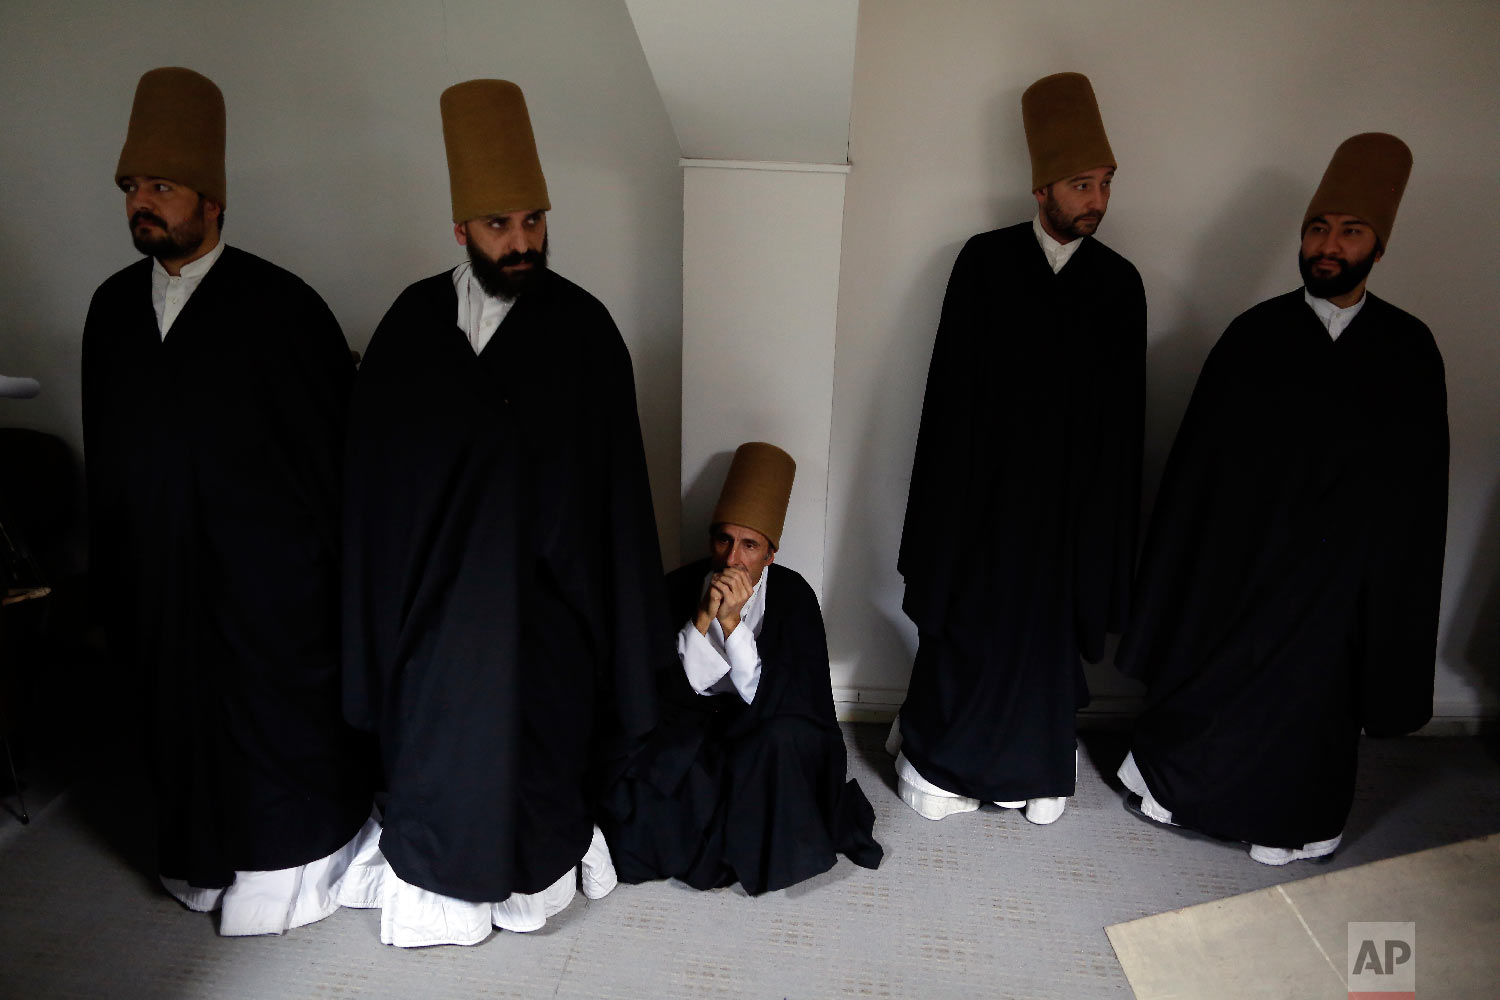 Whirling dervishes of the Mevlevi order wait to perform at a Sheb-i Arus ceremony in Konya, central Turkey, Sunday, Dec. 16, 2018. (AP Photo/Lefteris Pitarakis)